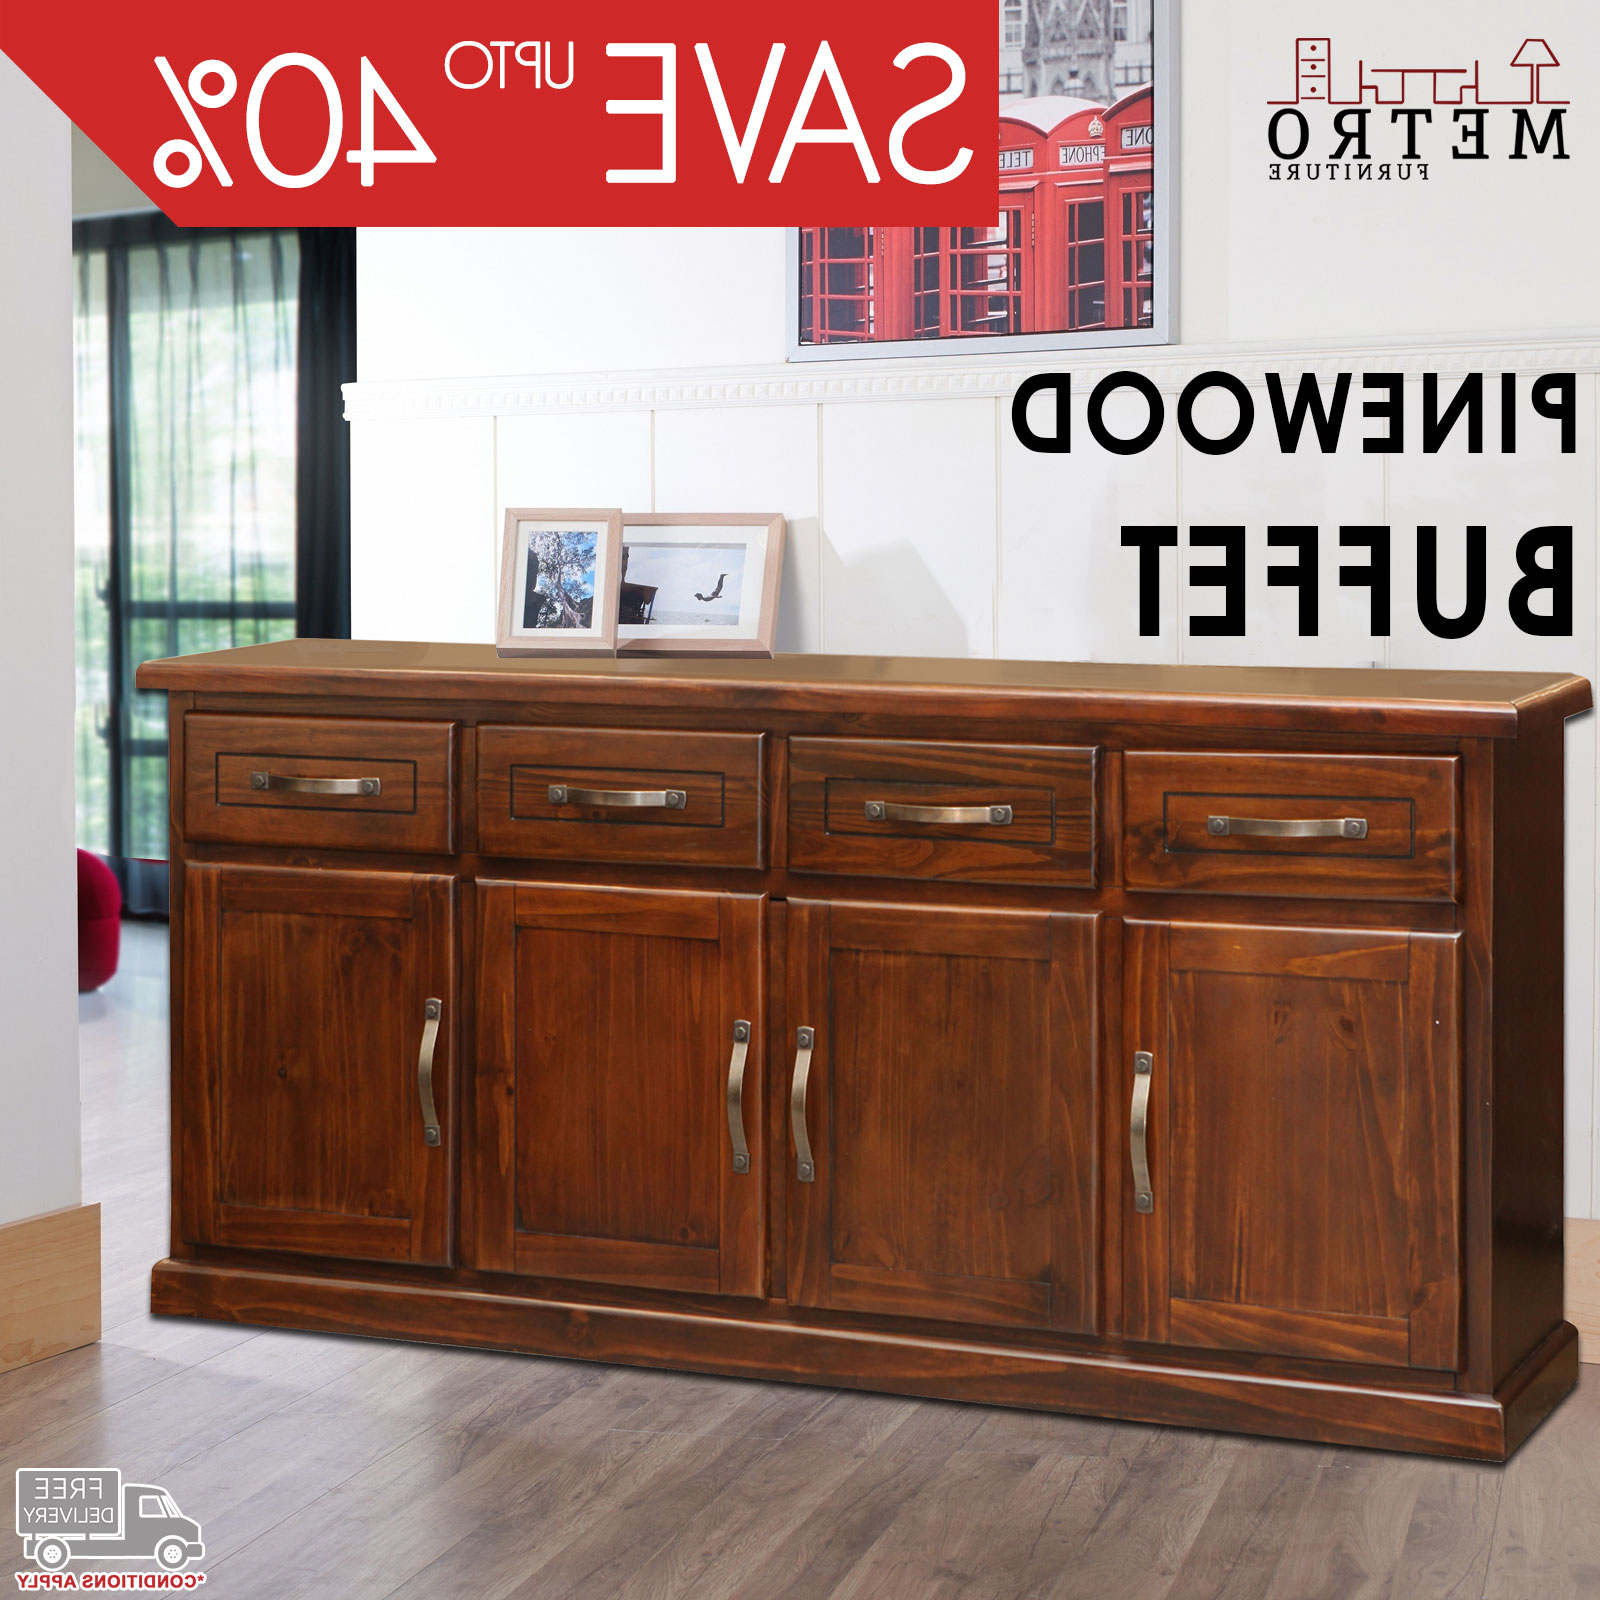 New Modern Traditional Buffet Sideboard Table With Cabinets Within Metro Sideboards (View 16 of 20)